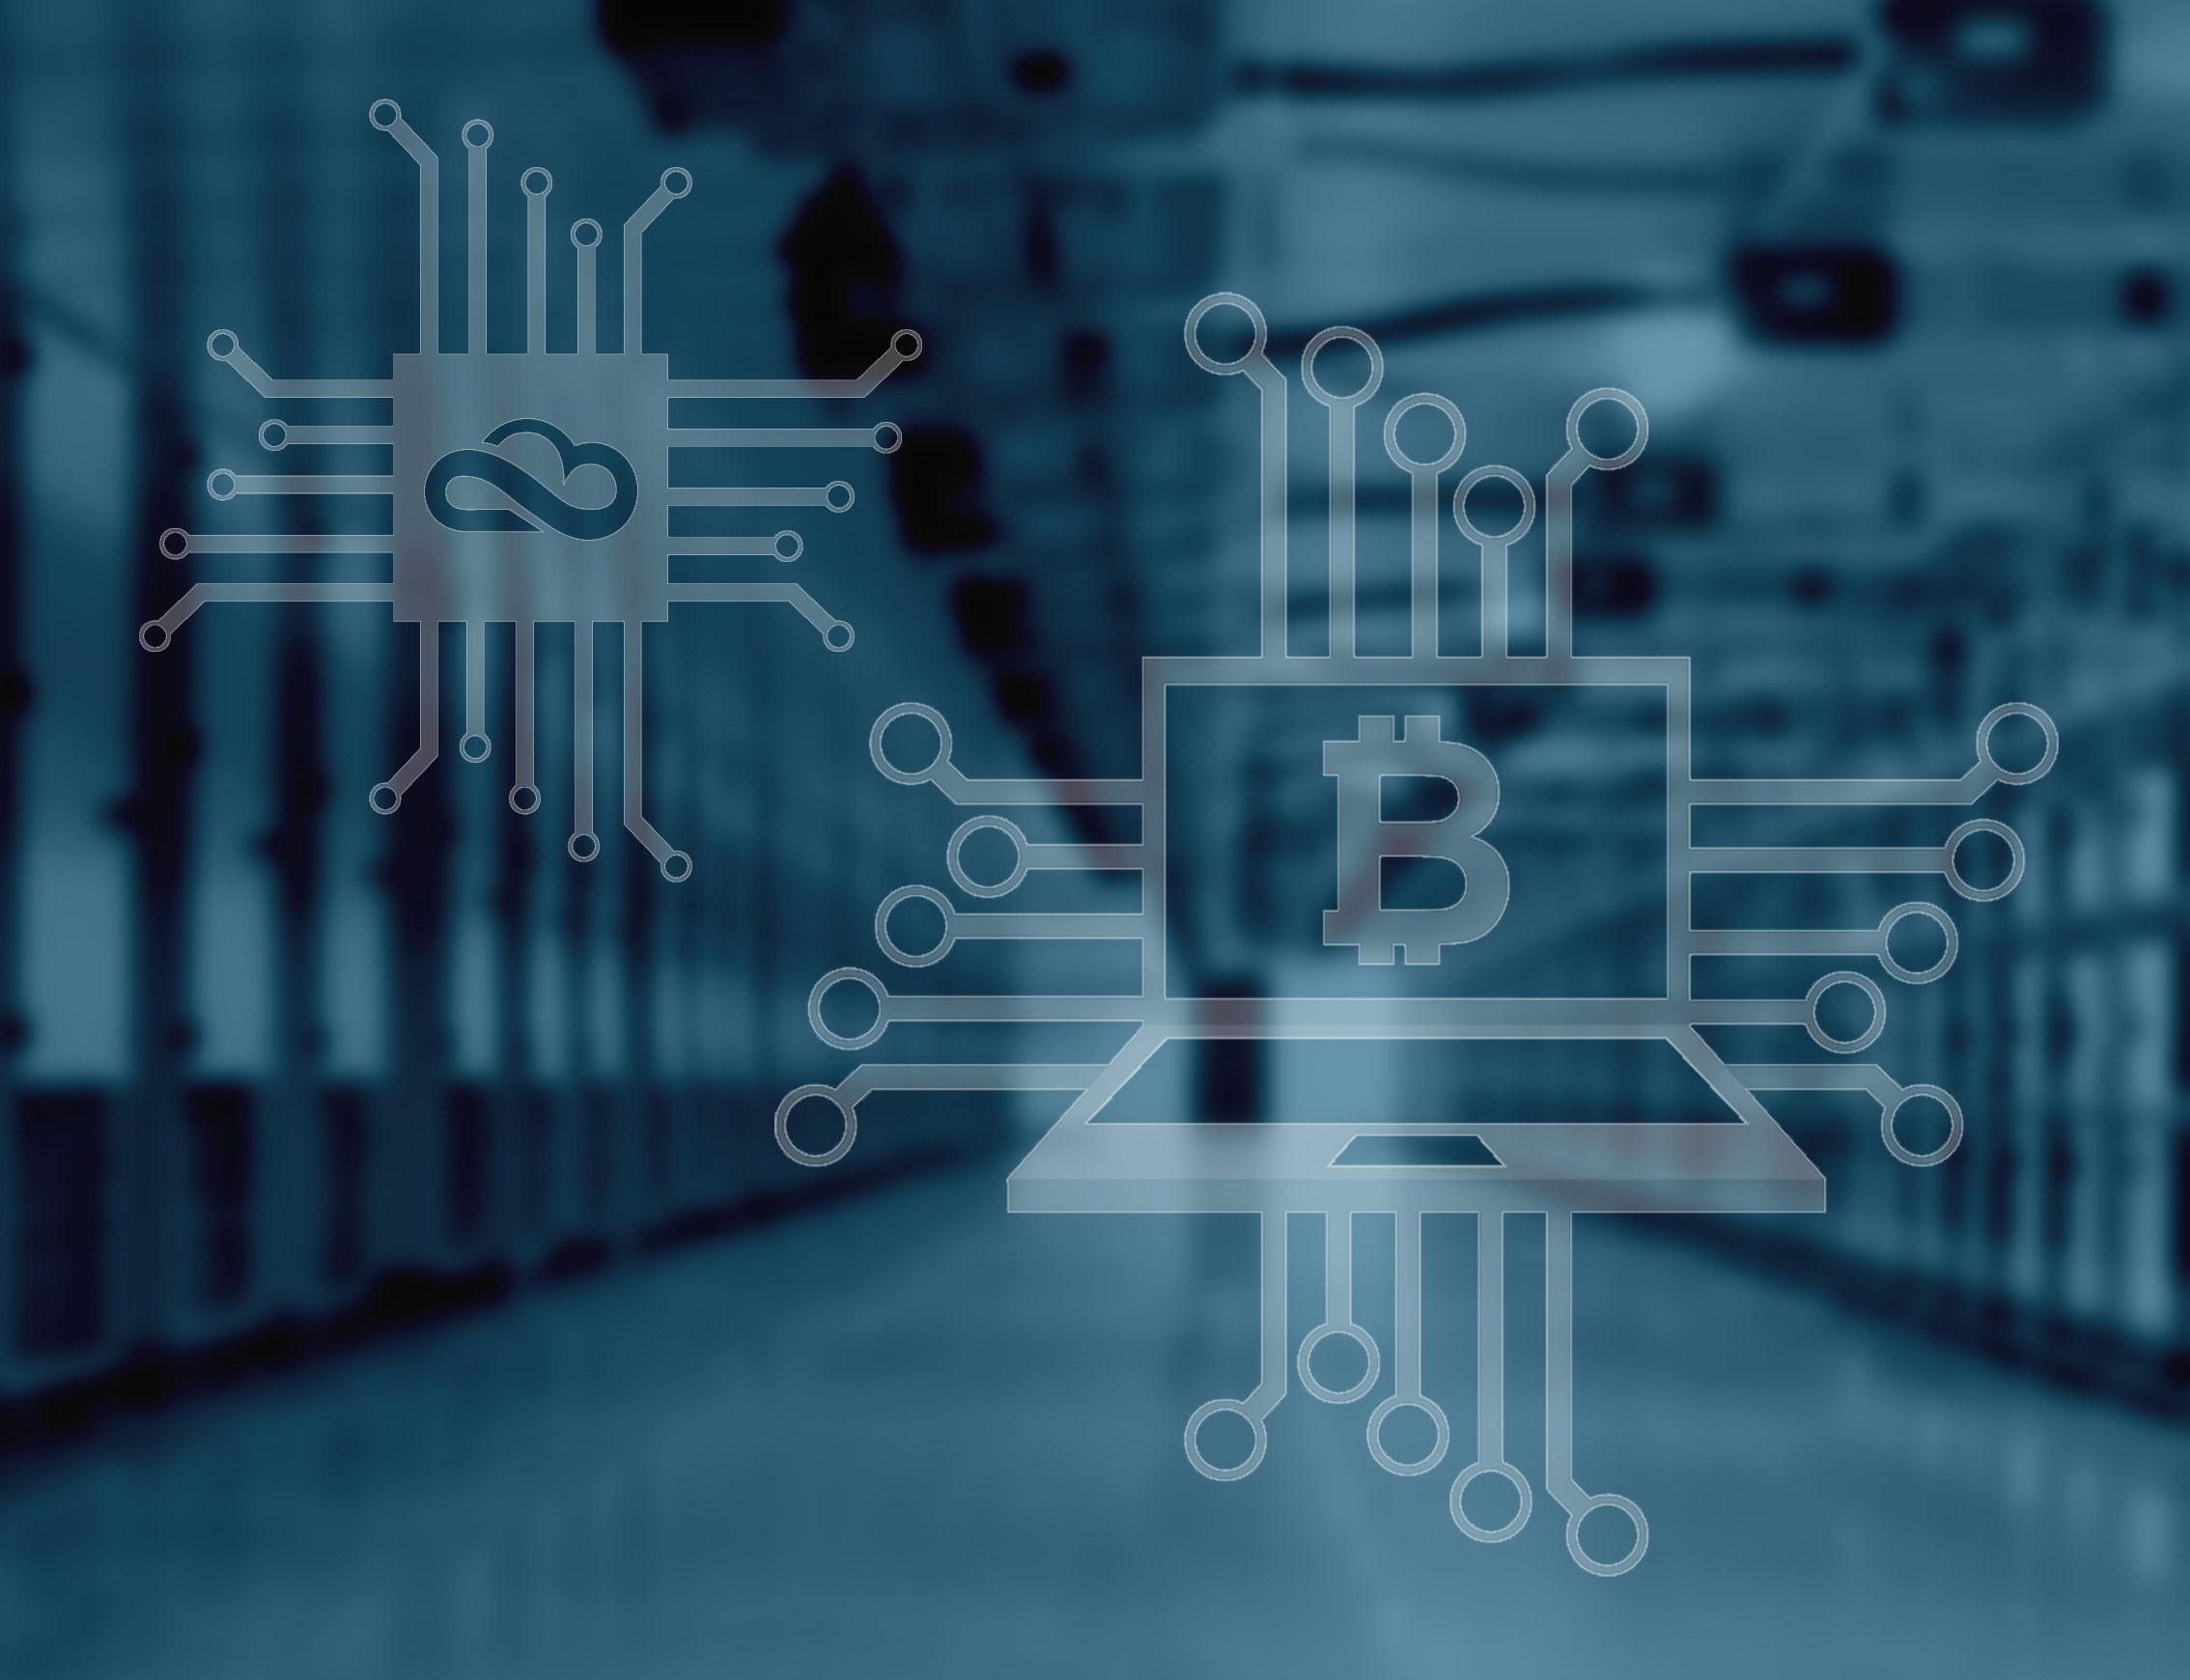 CloudCooler cooling bitcoin crypto currency mining in data centres